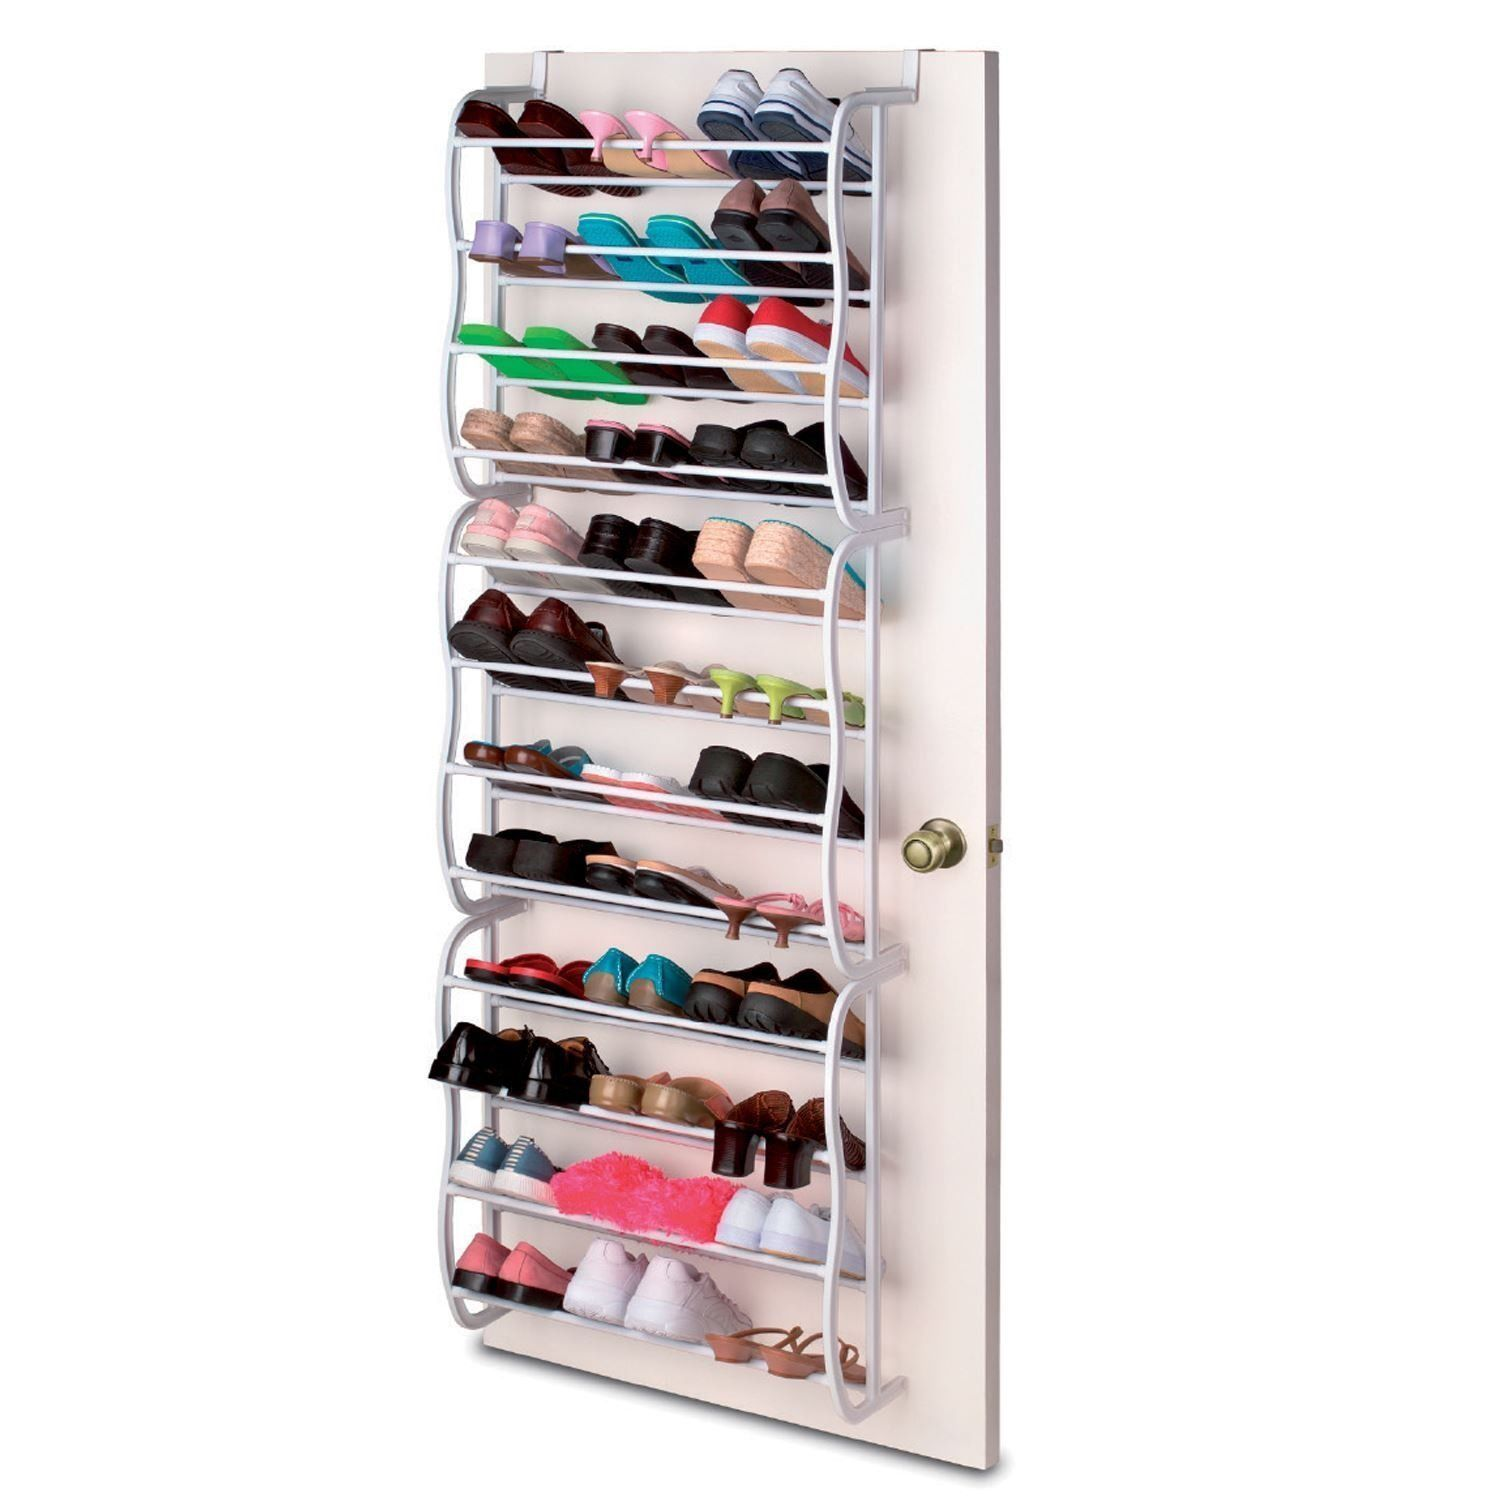 Hq shoe racks u organizers ebay home furniture u diy products in